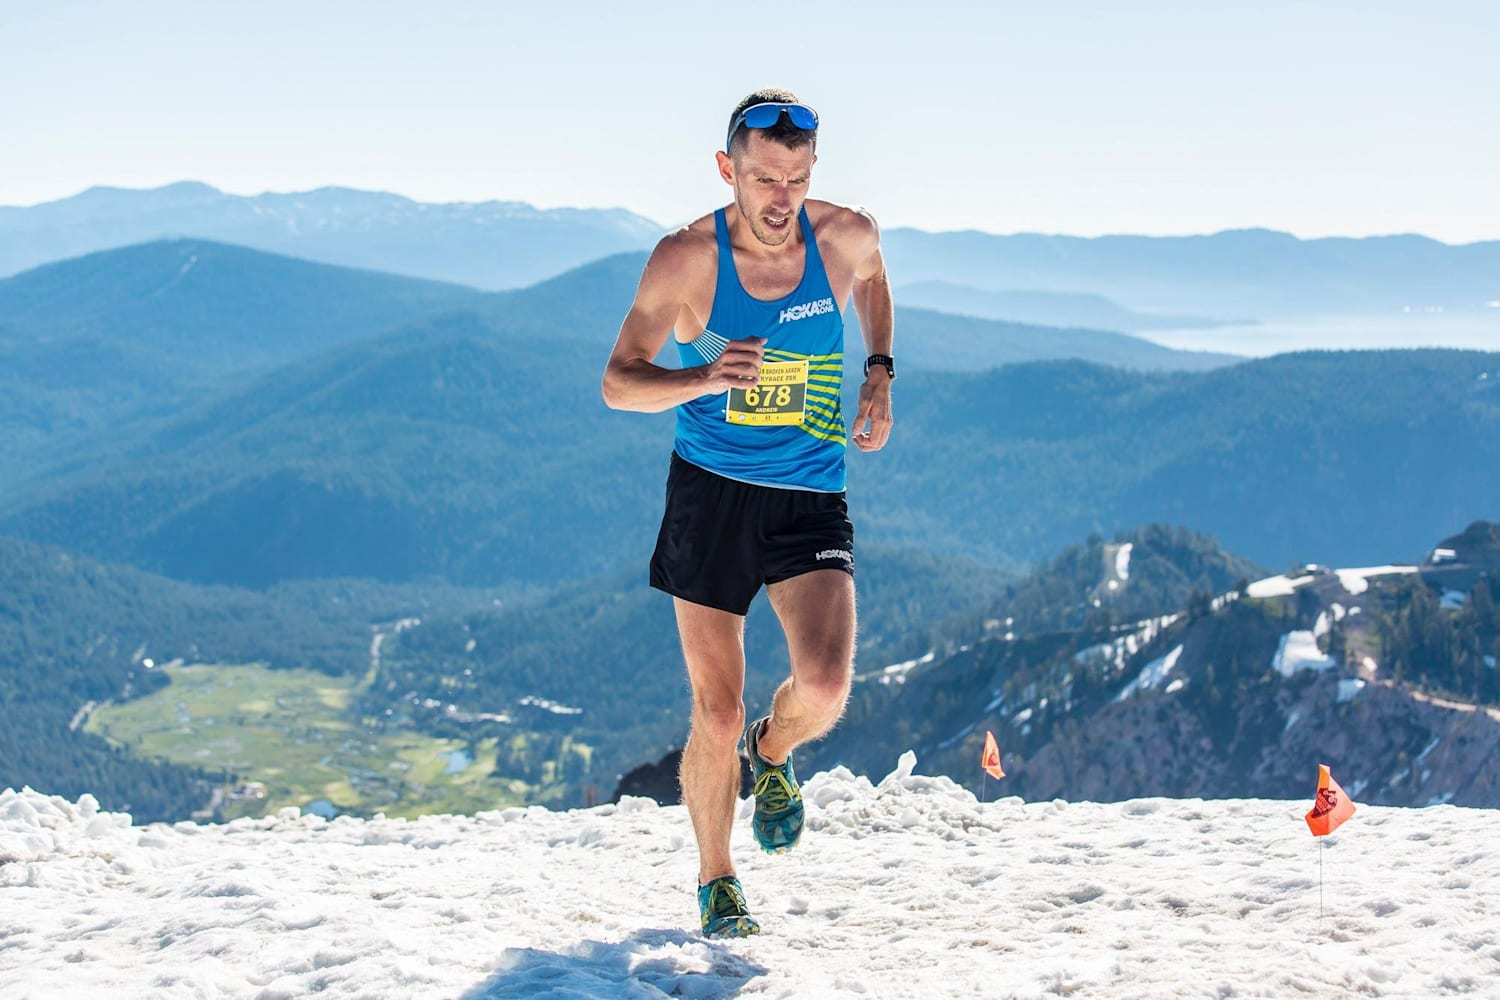 Uphill running: How to eat mountains for breakfast